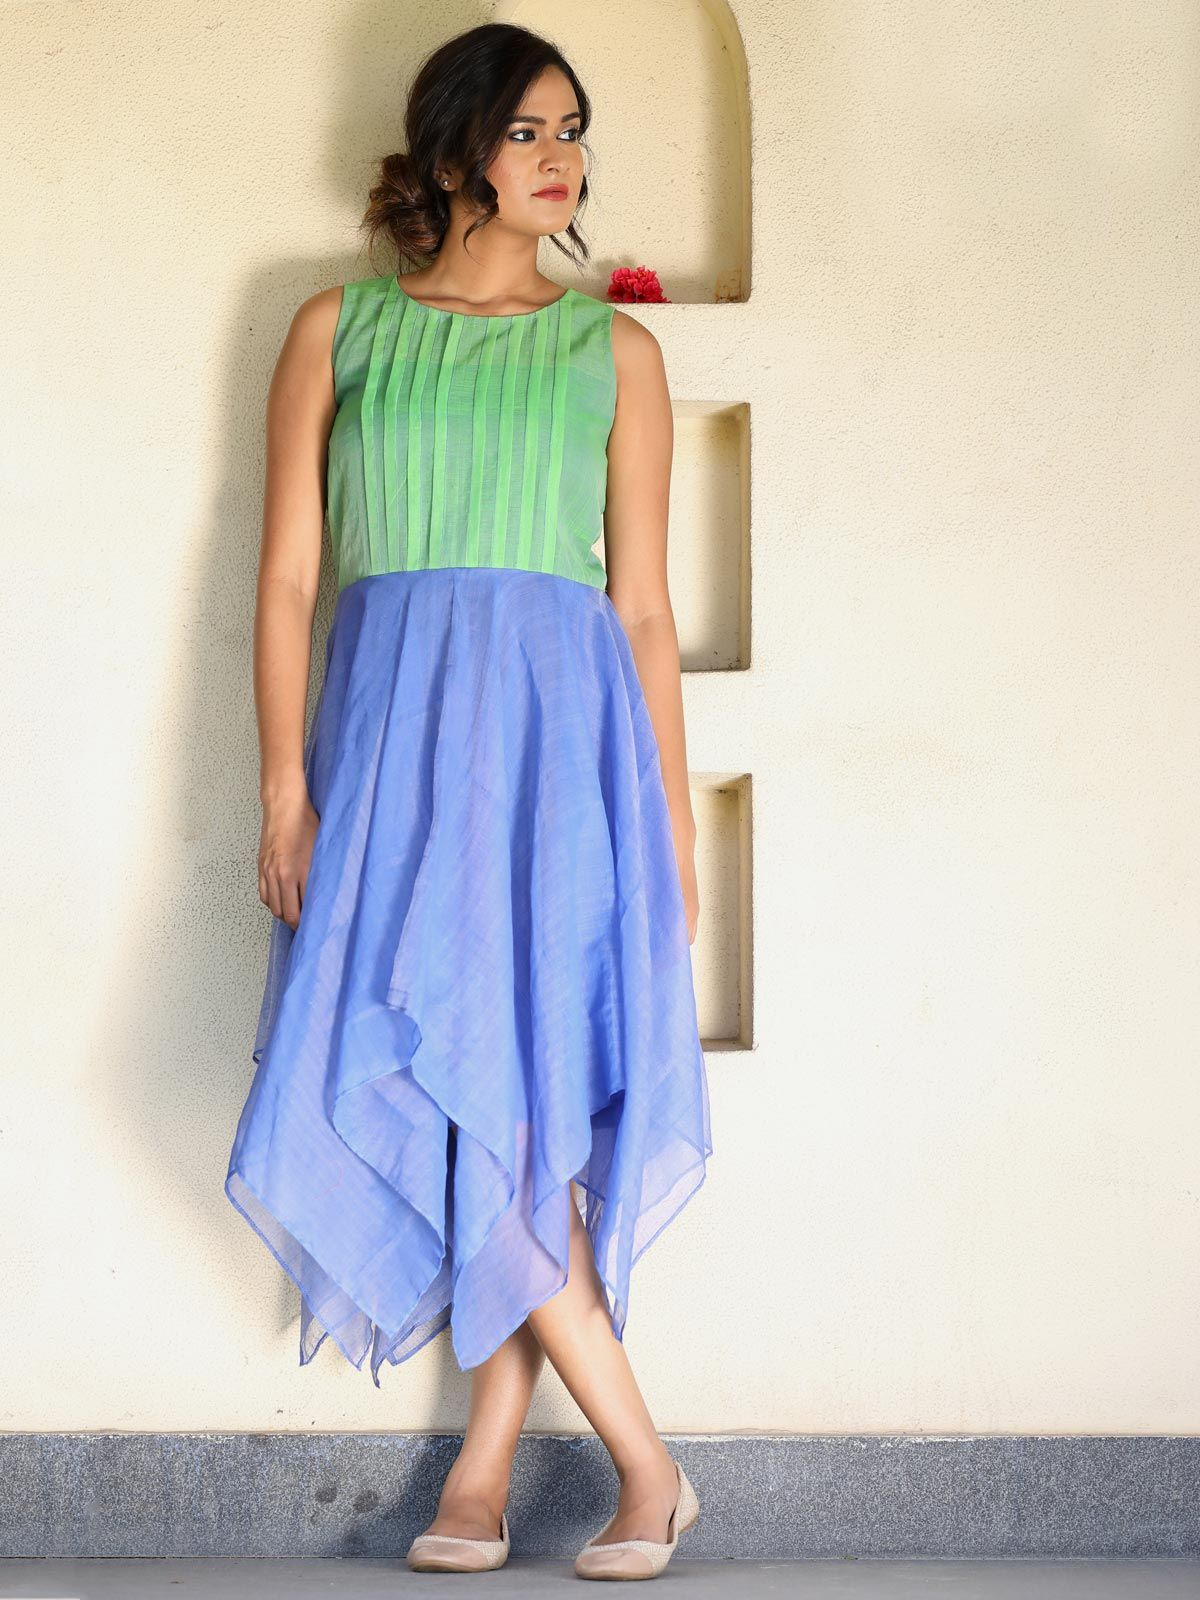 Green and blue handloom dress and flared yoke